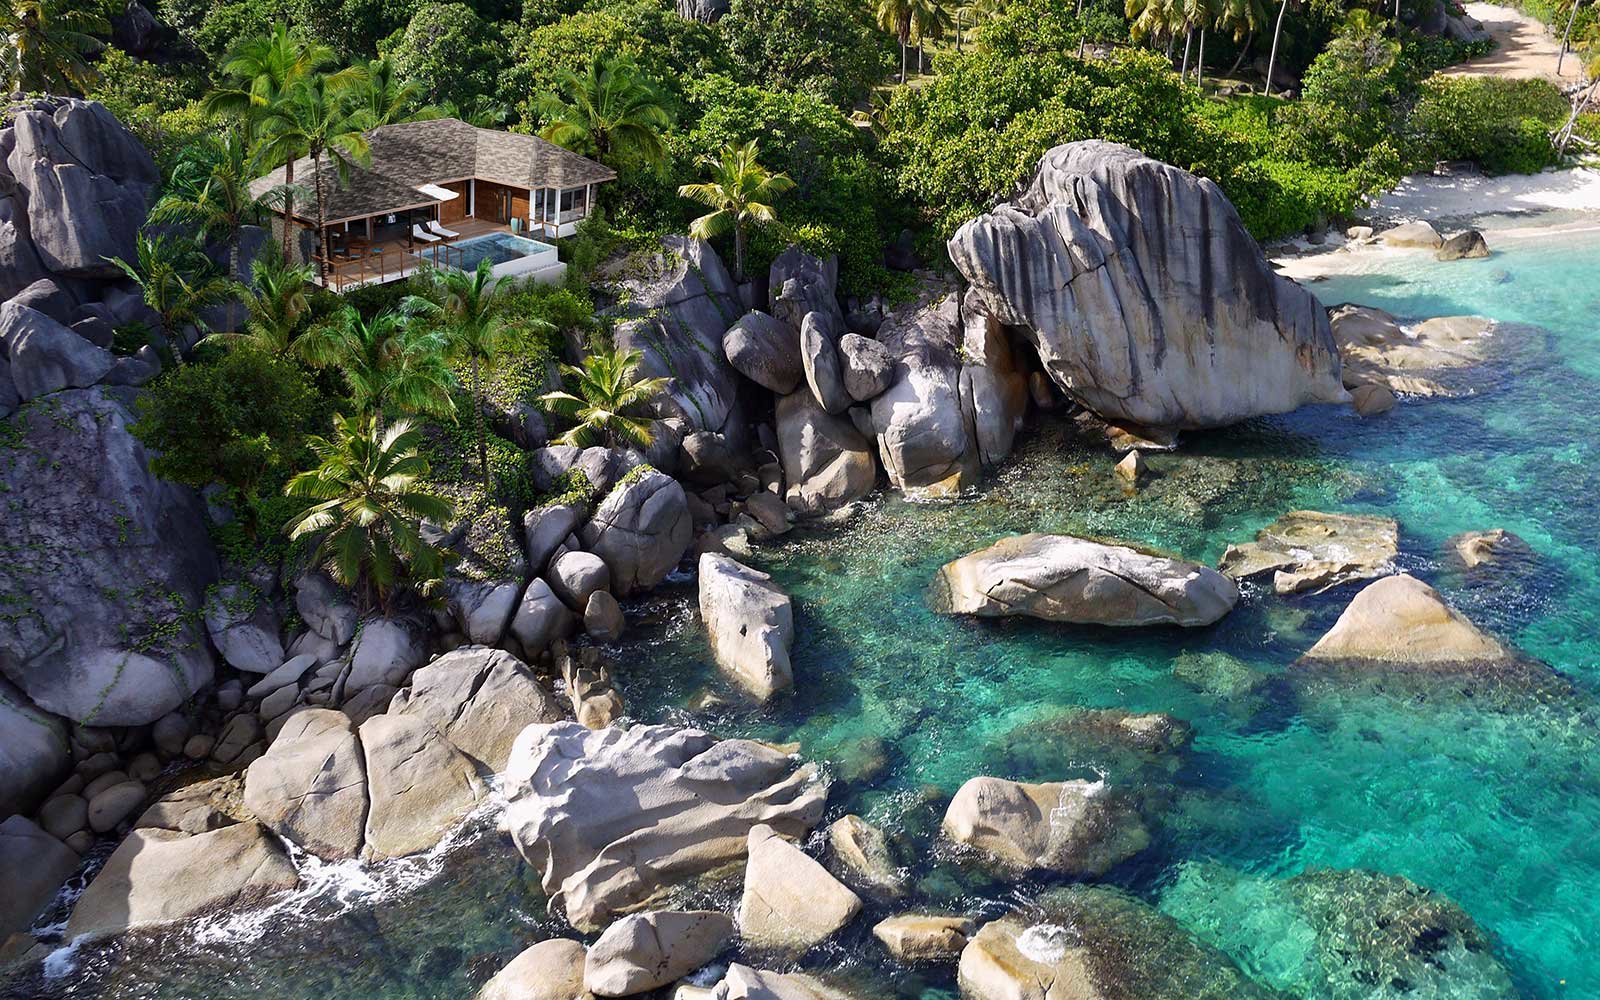 The Best Places To Travel In Travel Leisure - 8 places to visit in the seychelles islands